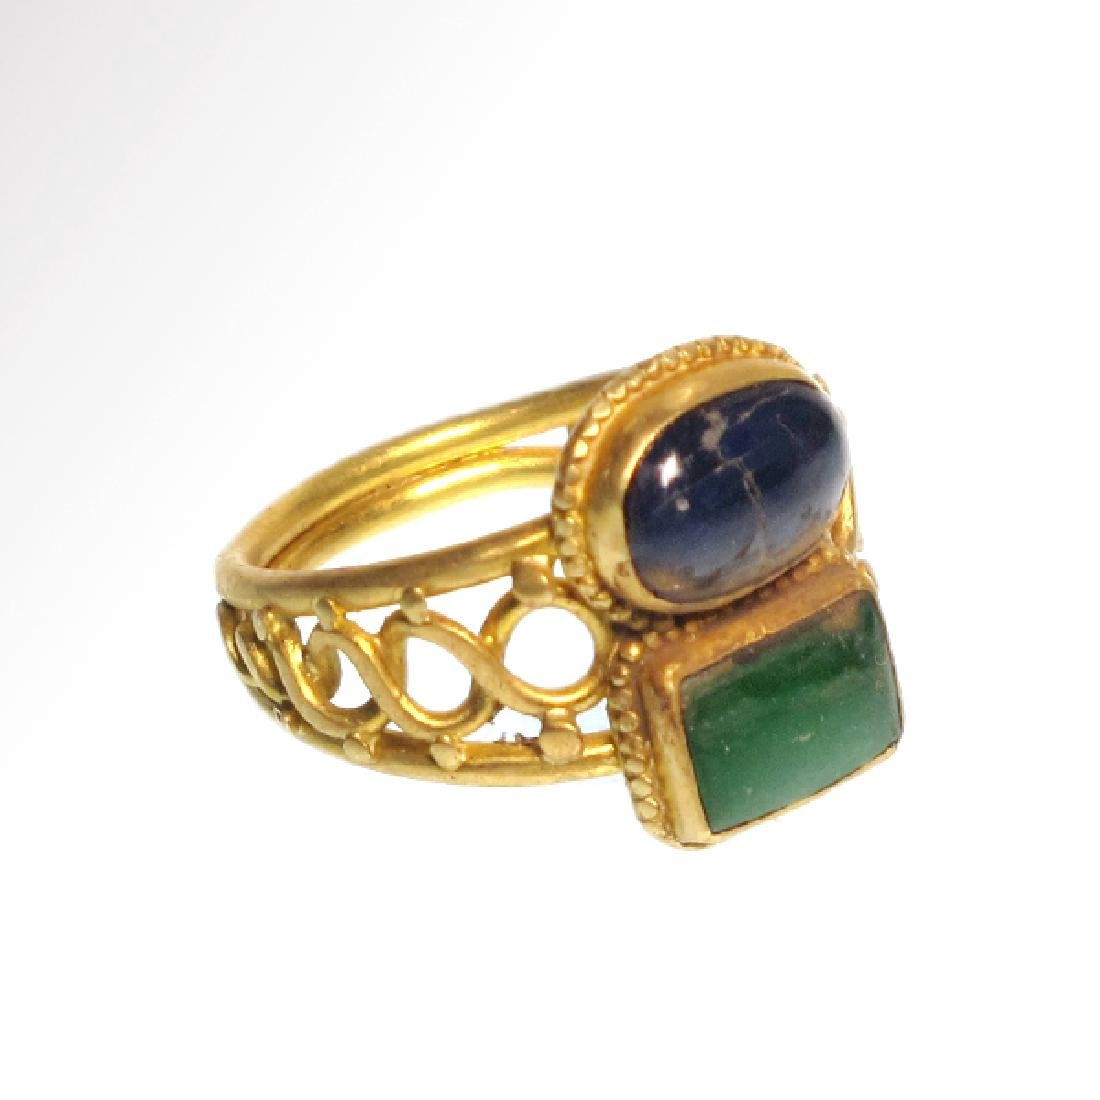 Medieval Gold, Sapphire and Emerald Ring